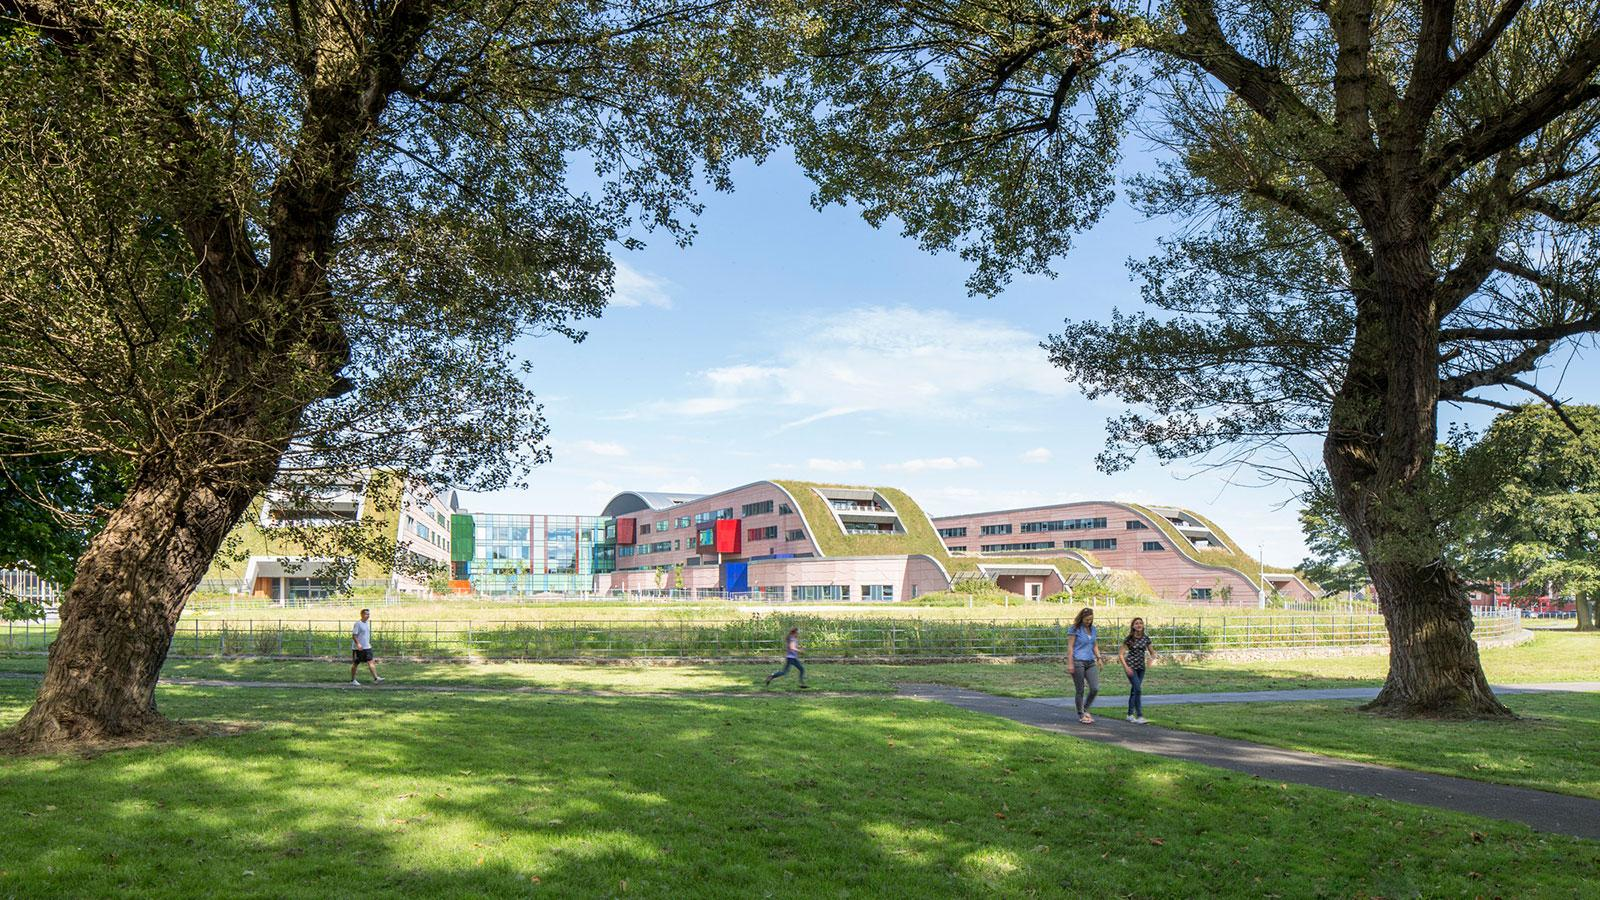 people enjoy a trail in the park on the ground of Alder Hey Children's Health Park hospital, with the building visible in the background